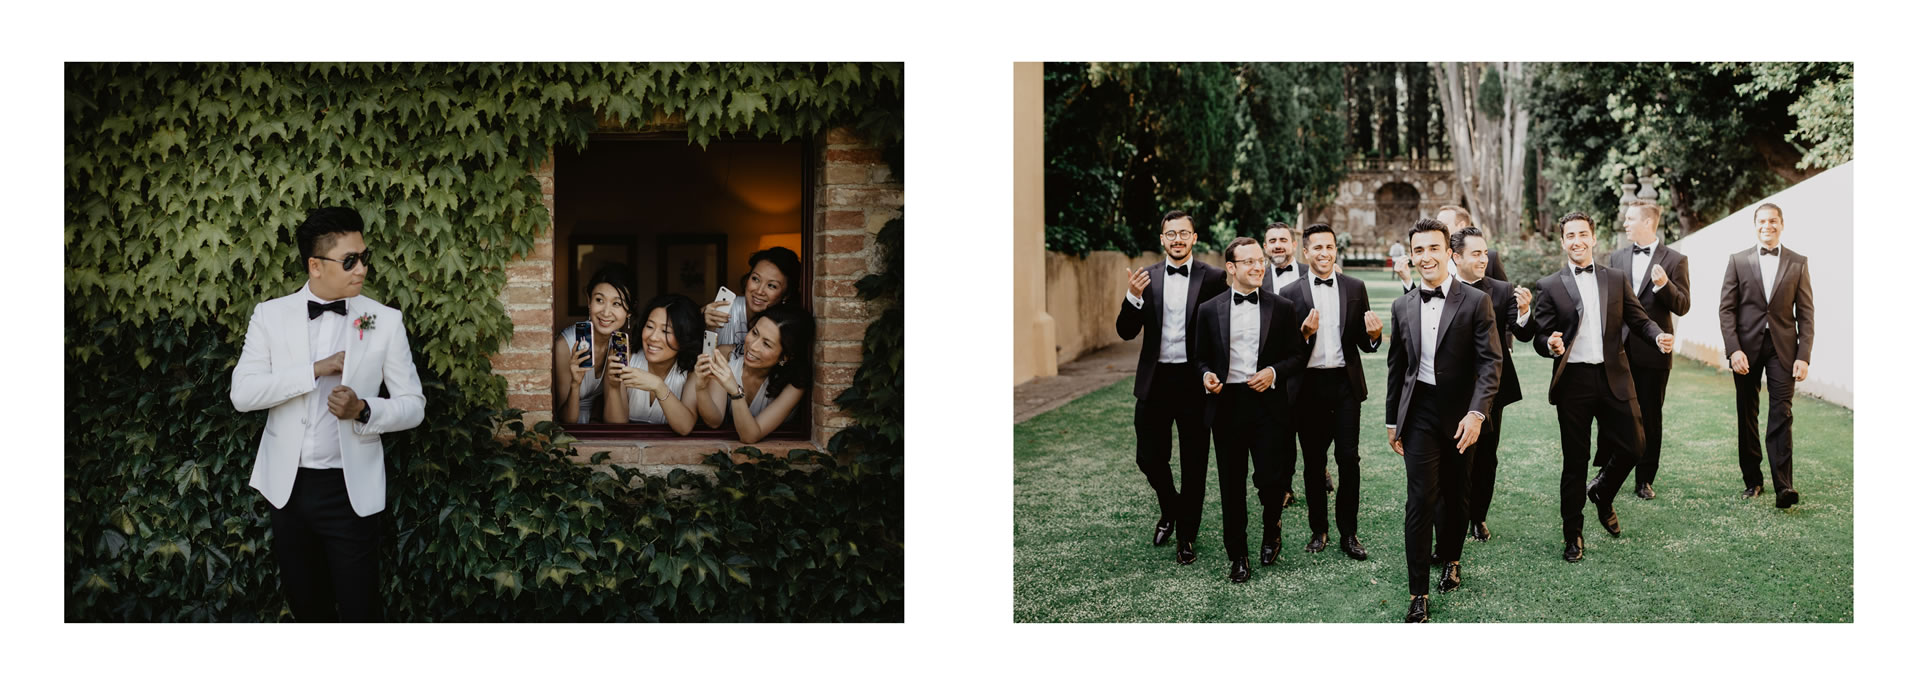 - 14 :: BEST OF 2018 WEDDING: A COLLECTION TO TELL ONE YEAR STORY :: Luxury wedding photography - 13 ::  - 14